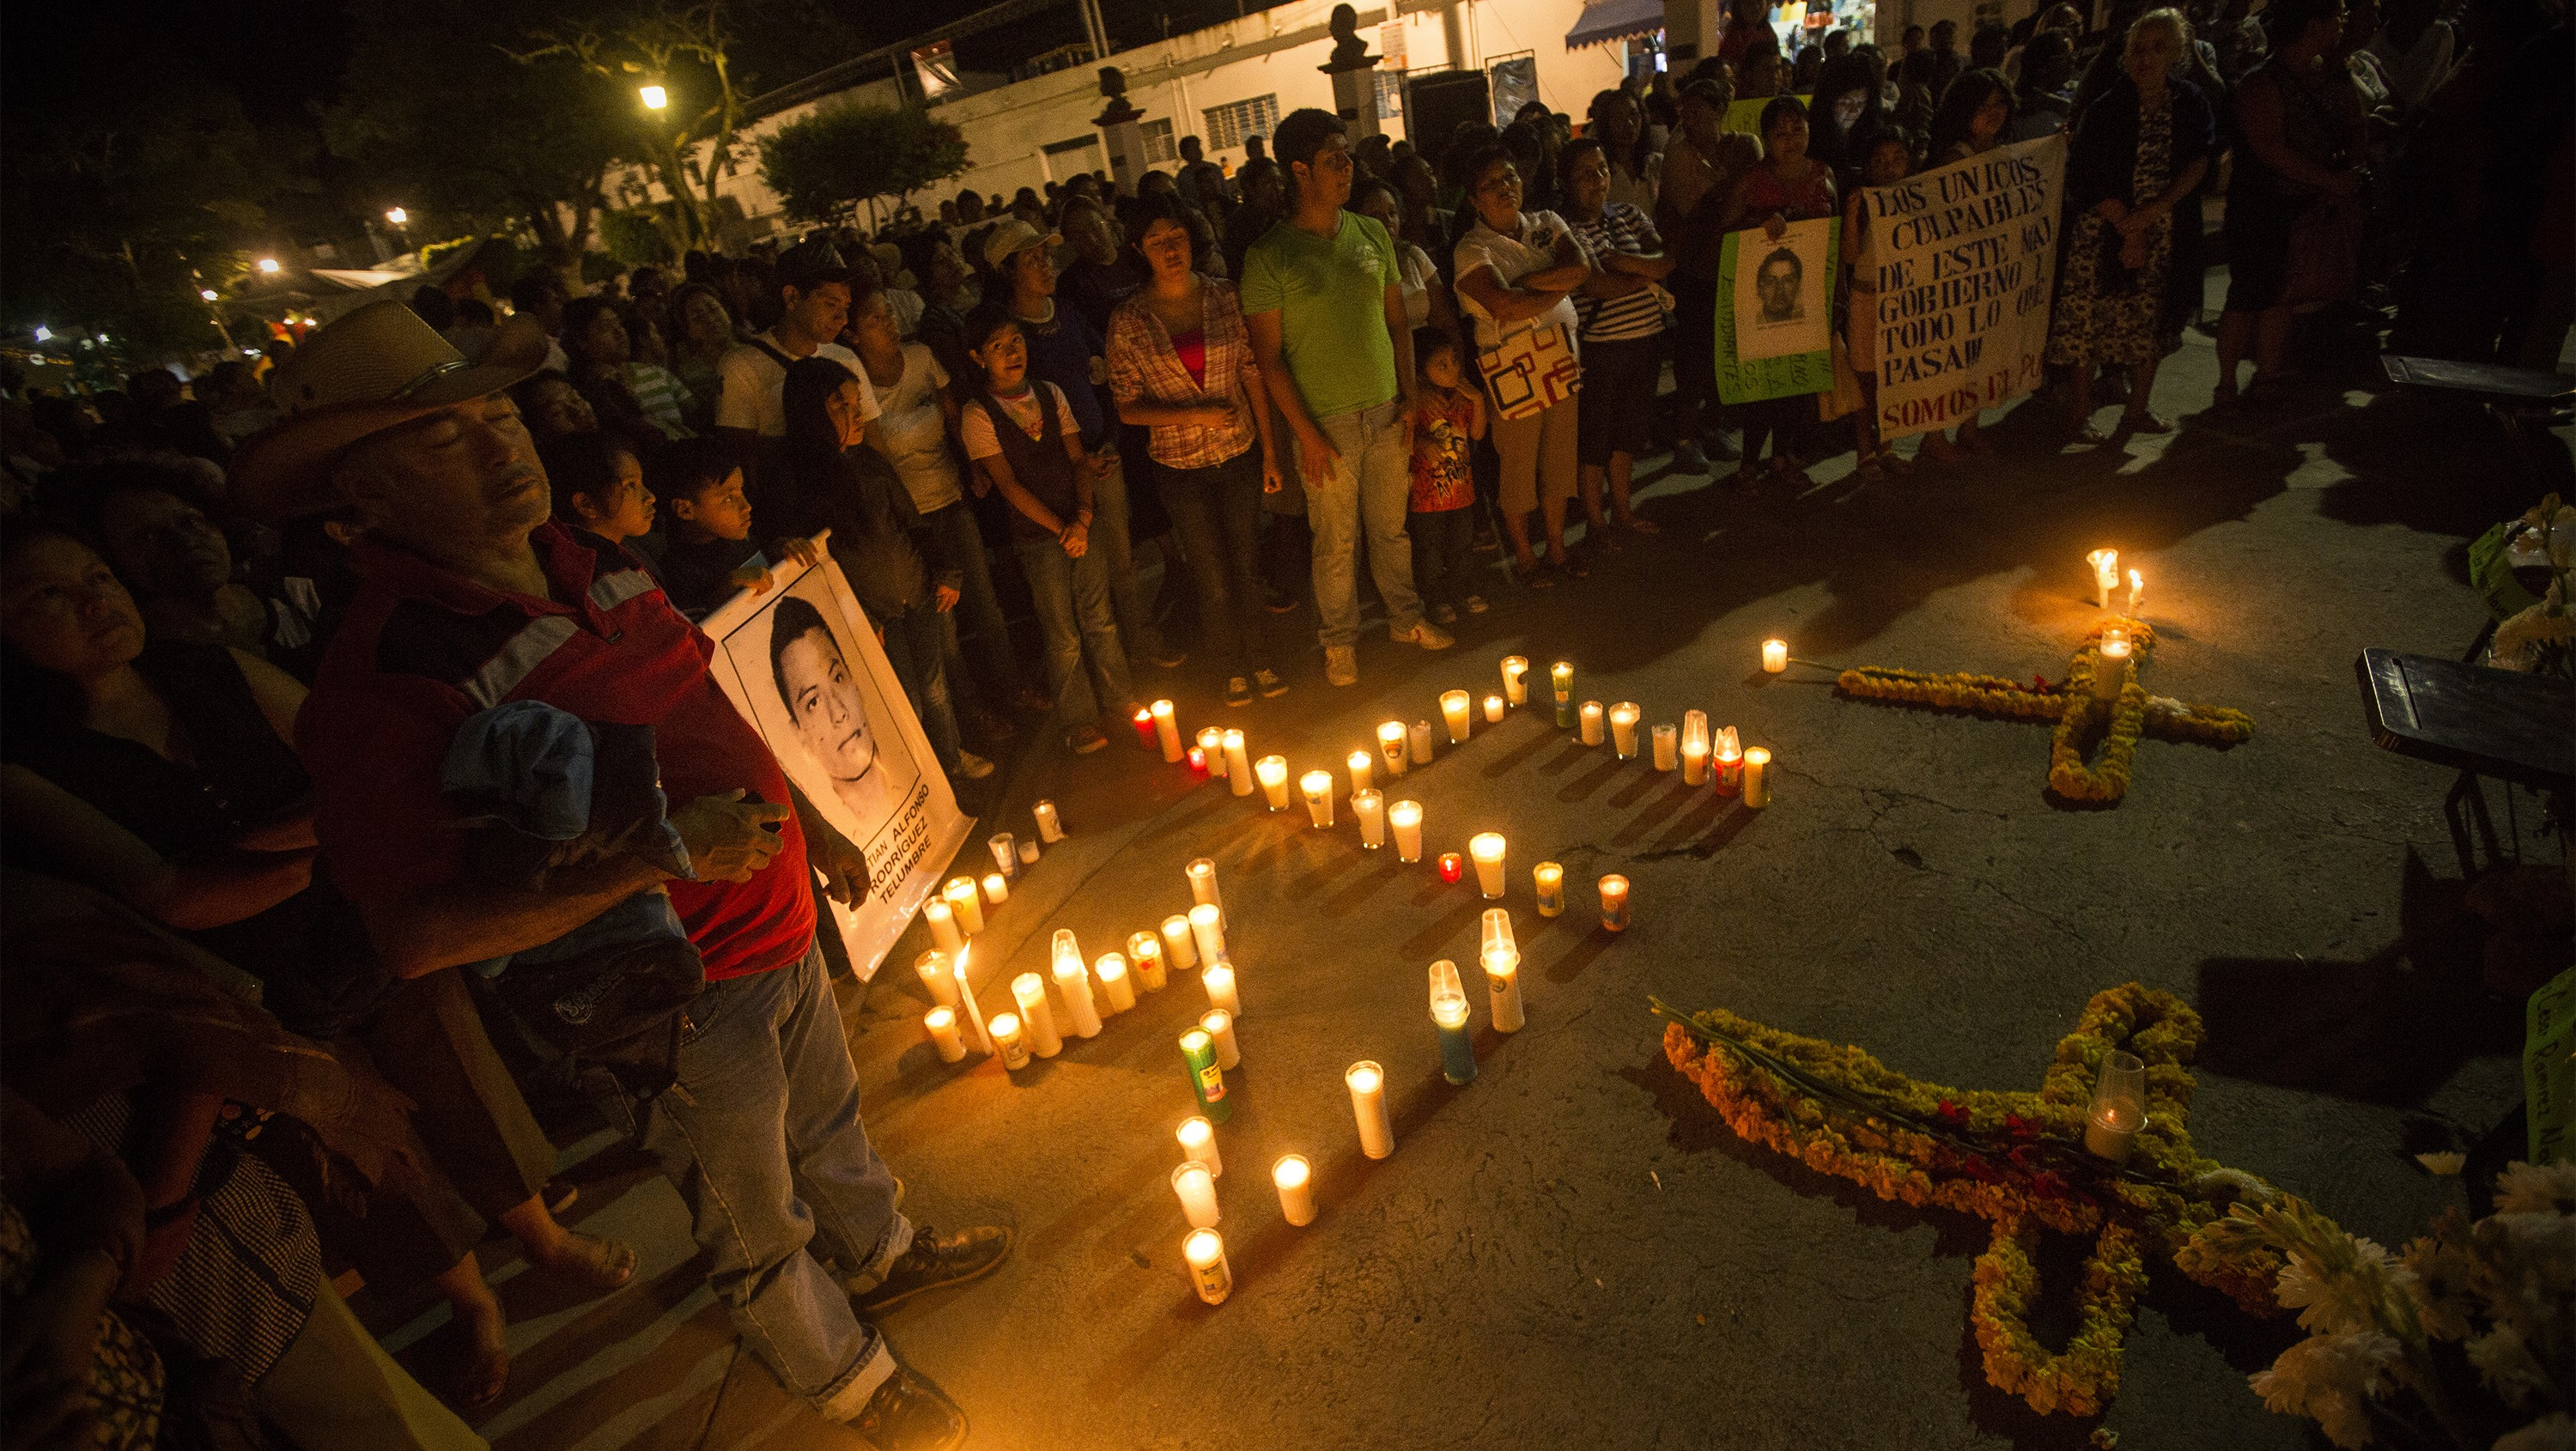 More Bloodshed in Mexico: Activist Who Led Search Parties for the Missing 43 Is Shot Dead